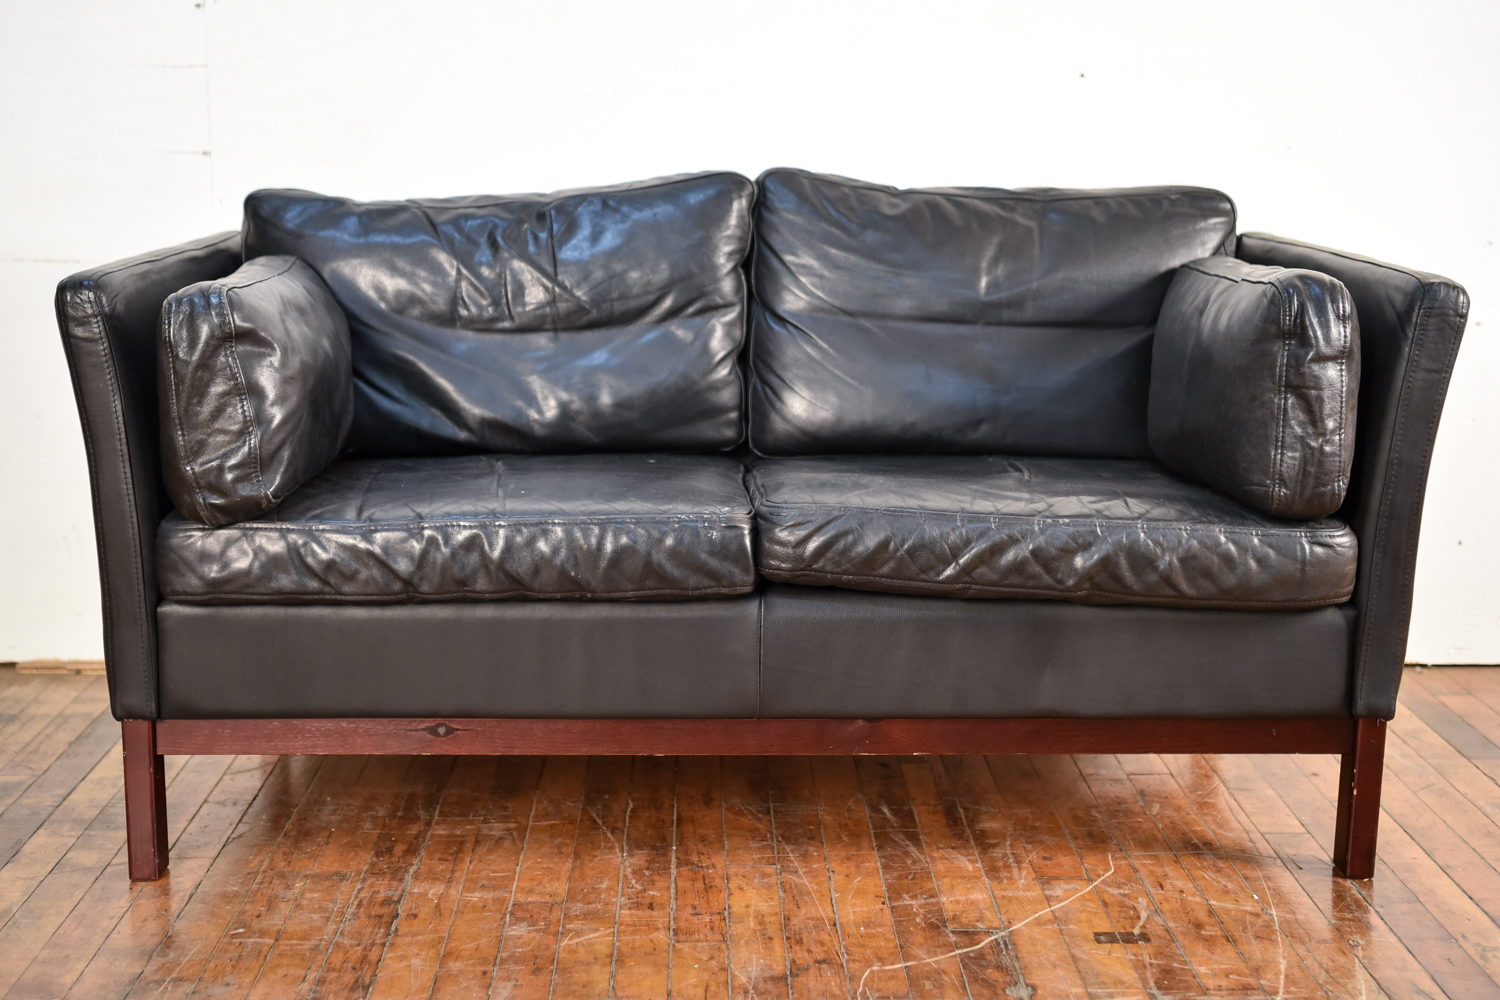 Danish Black Aniline Leather Two Seat Sofa By Mogens Hansen 1960s